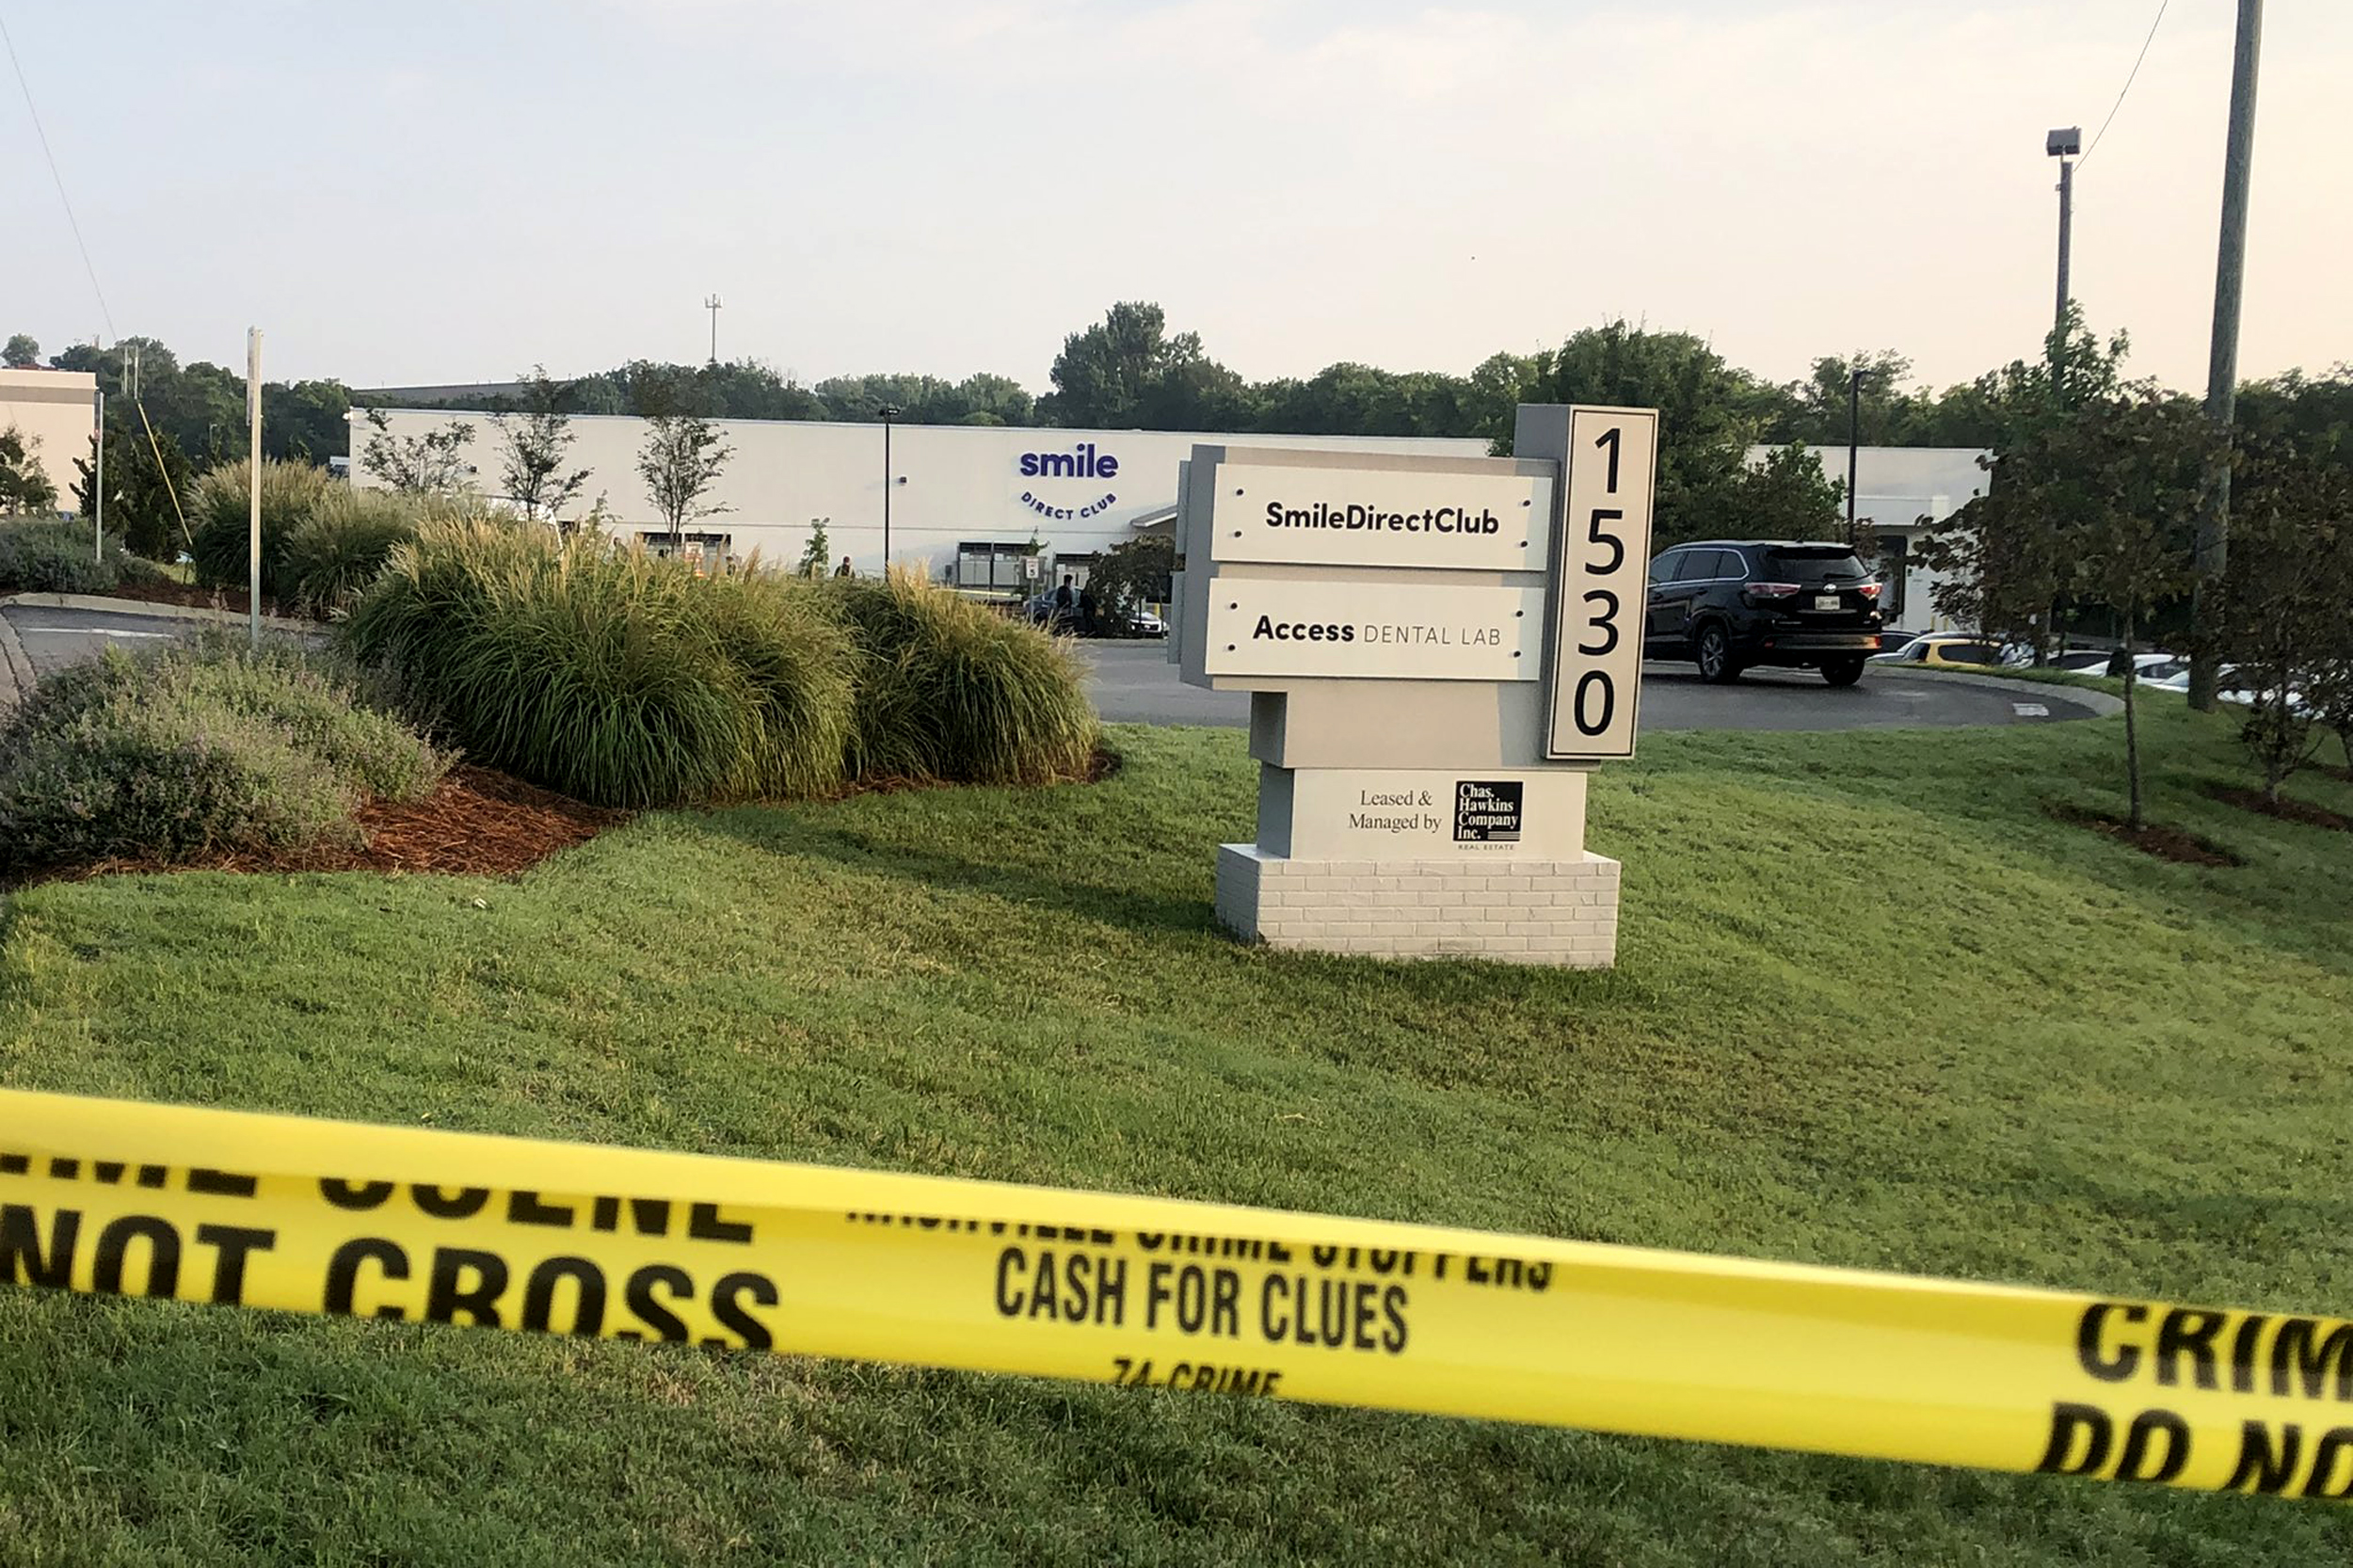 Three People Injured in Workplace Shooting at SmileDirectClub Warehouse in Tennessee